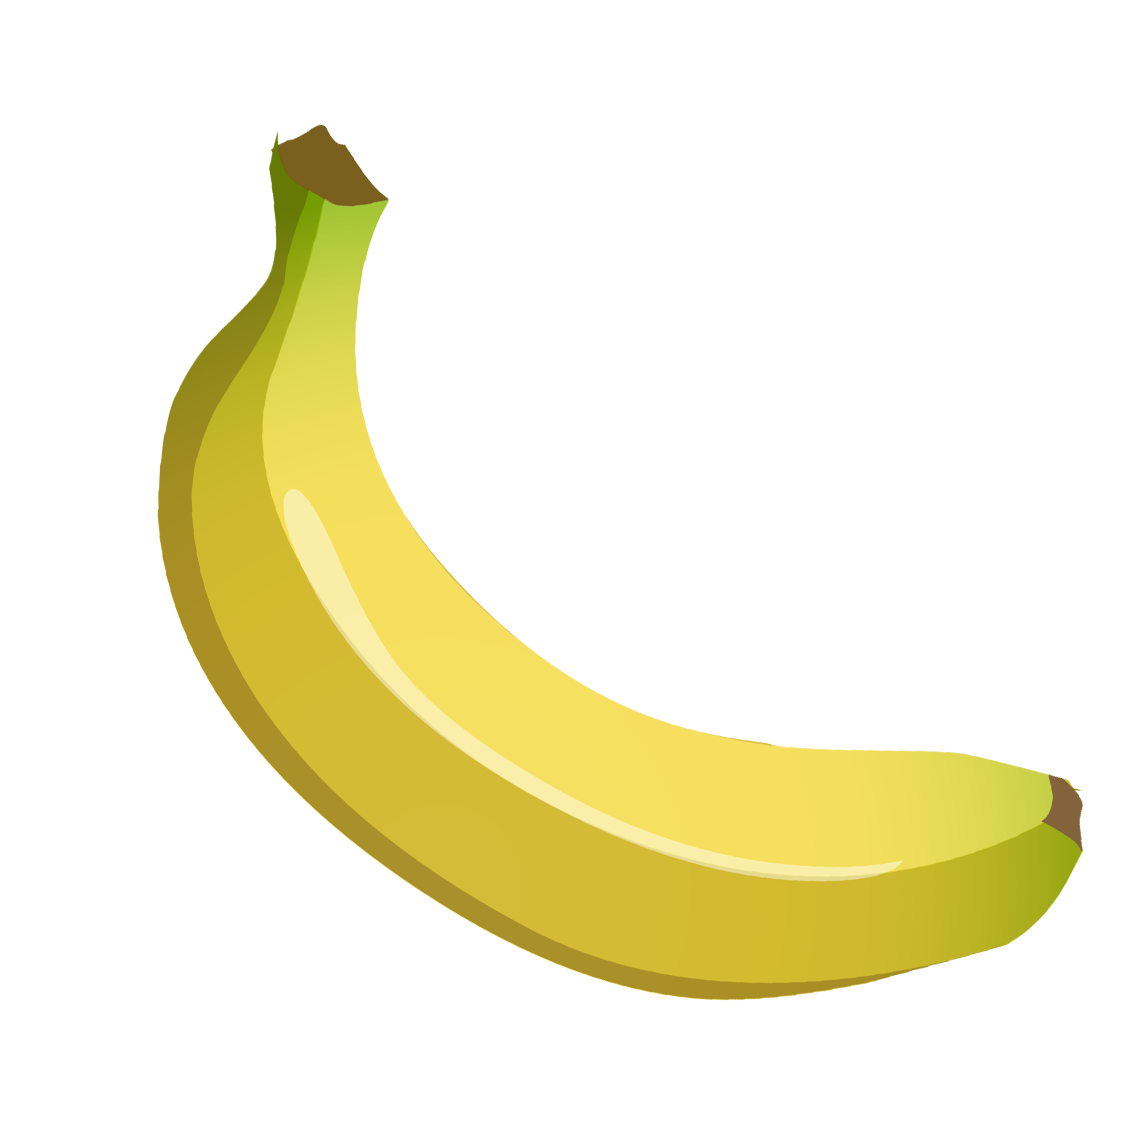 Free Download High Quality Cartoon Banana Png Transparent Background Image Banana Clipart Png It Is Be Cartoon Banana Transparent Background Background Images